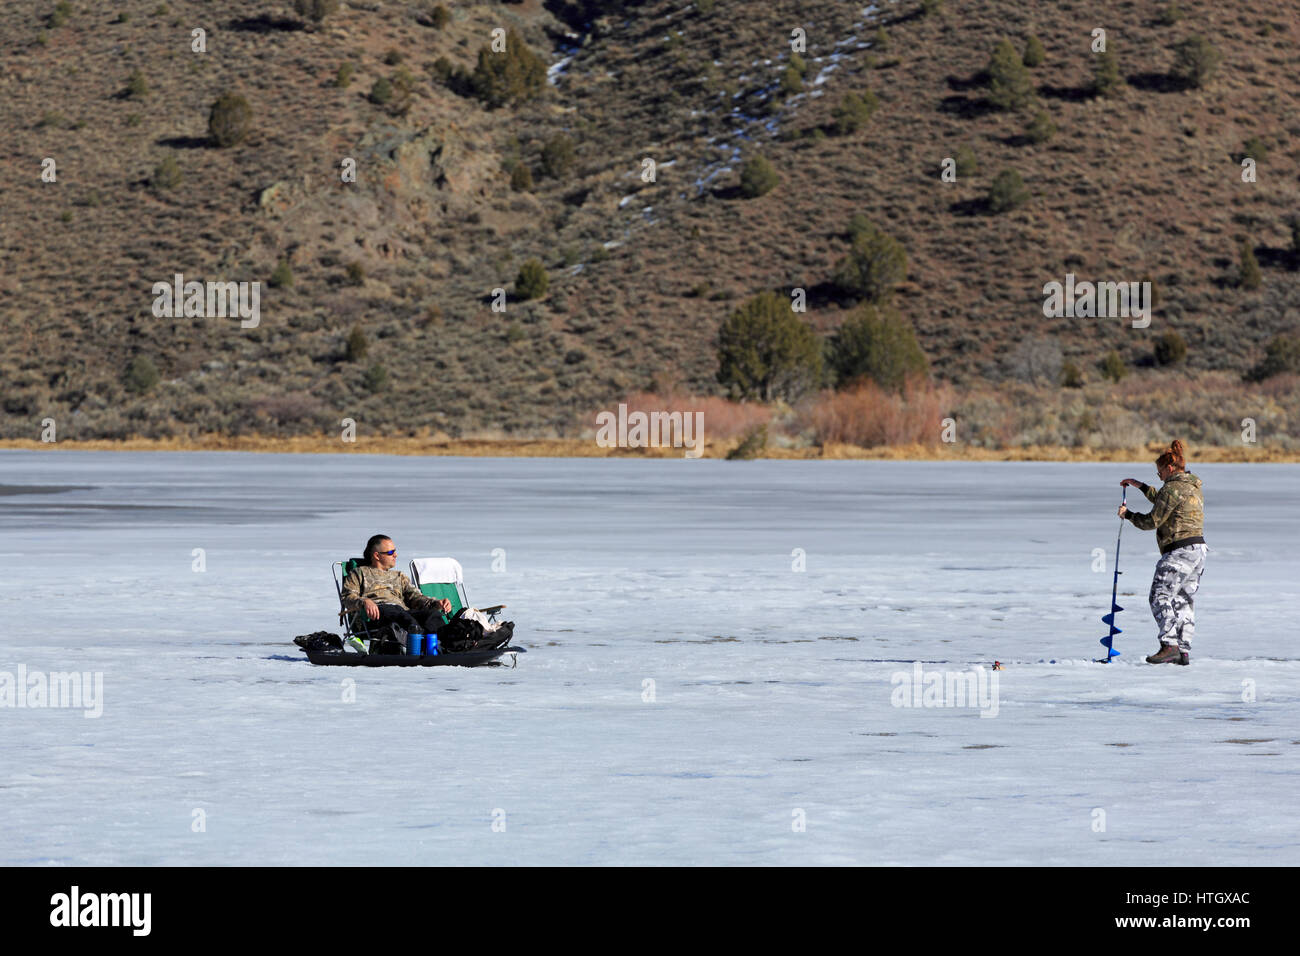 Eagle Valley Resevoir, Spring Valley State Park, Pioche, Nevada, USA - Stock Image